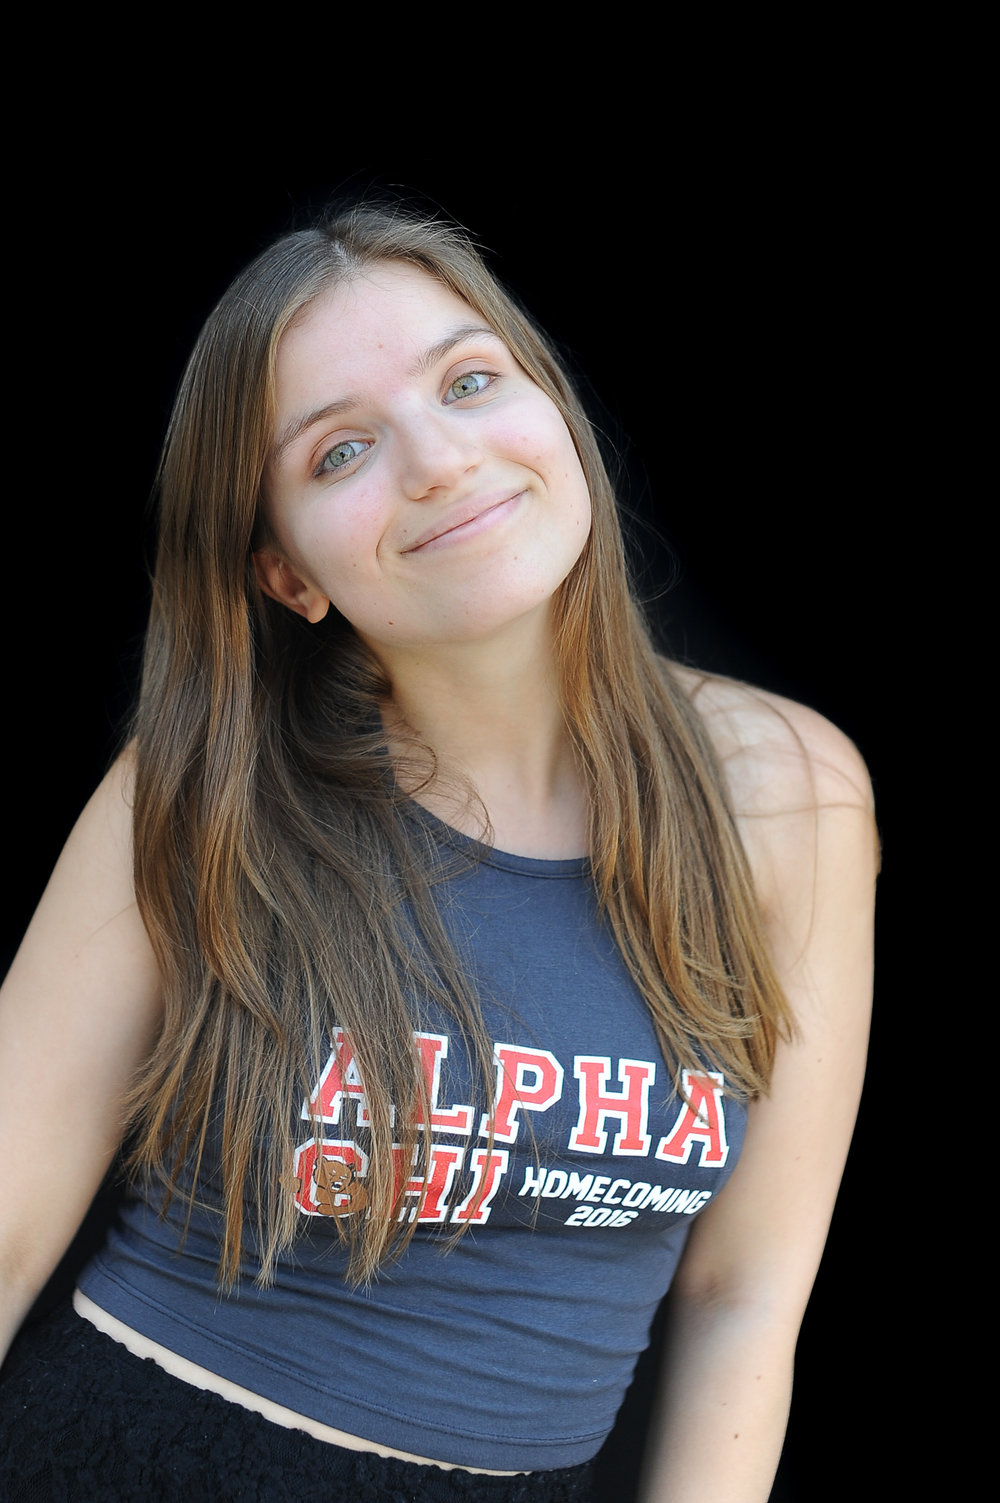 Name: Alexa Bernardini 